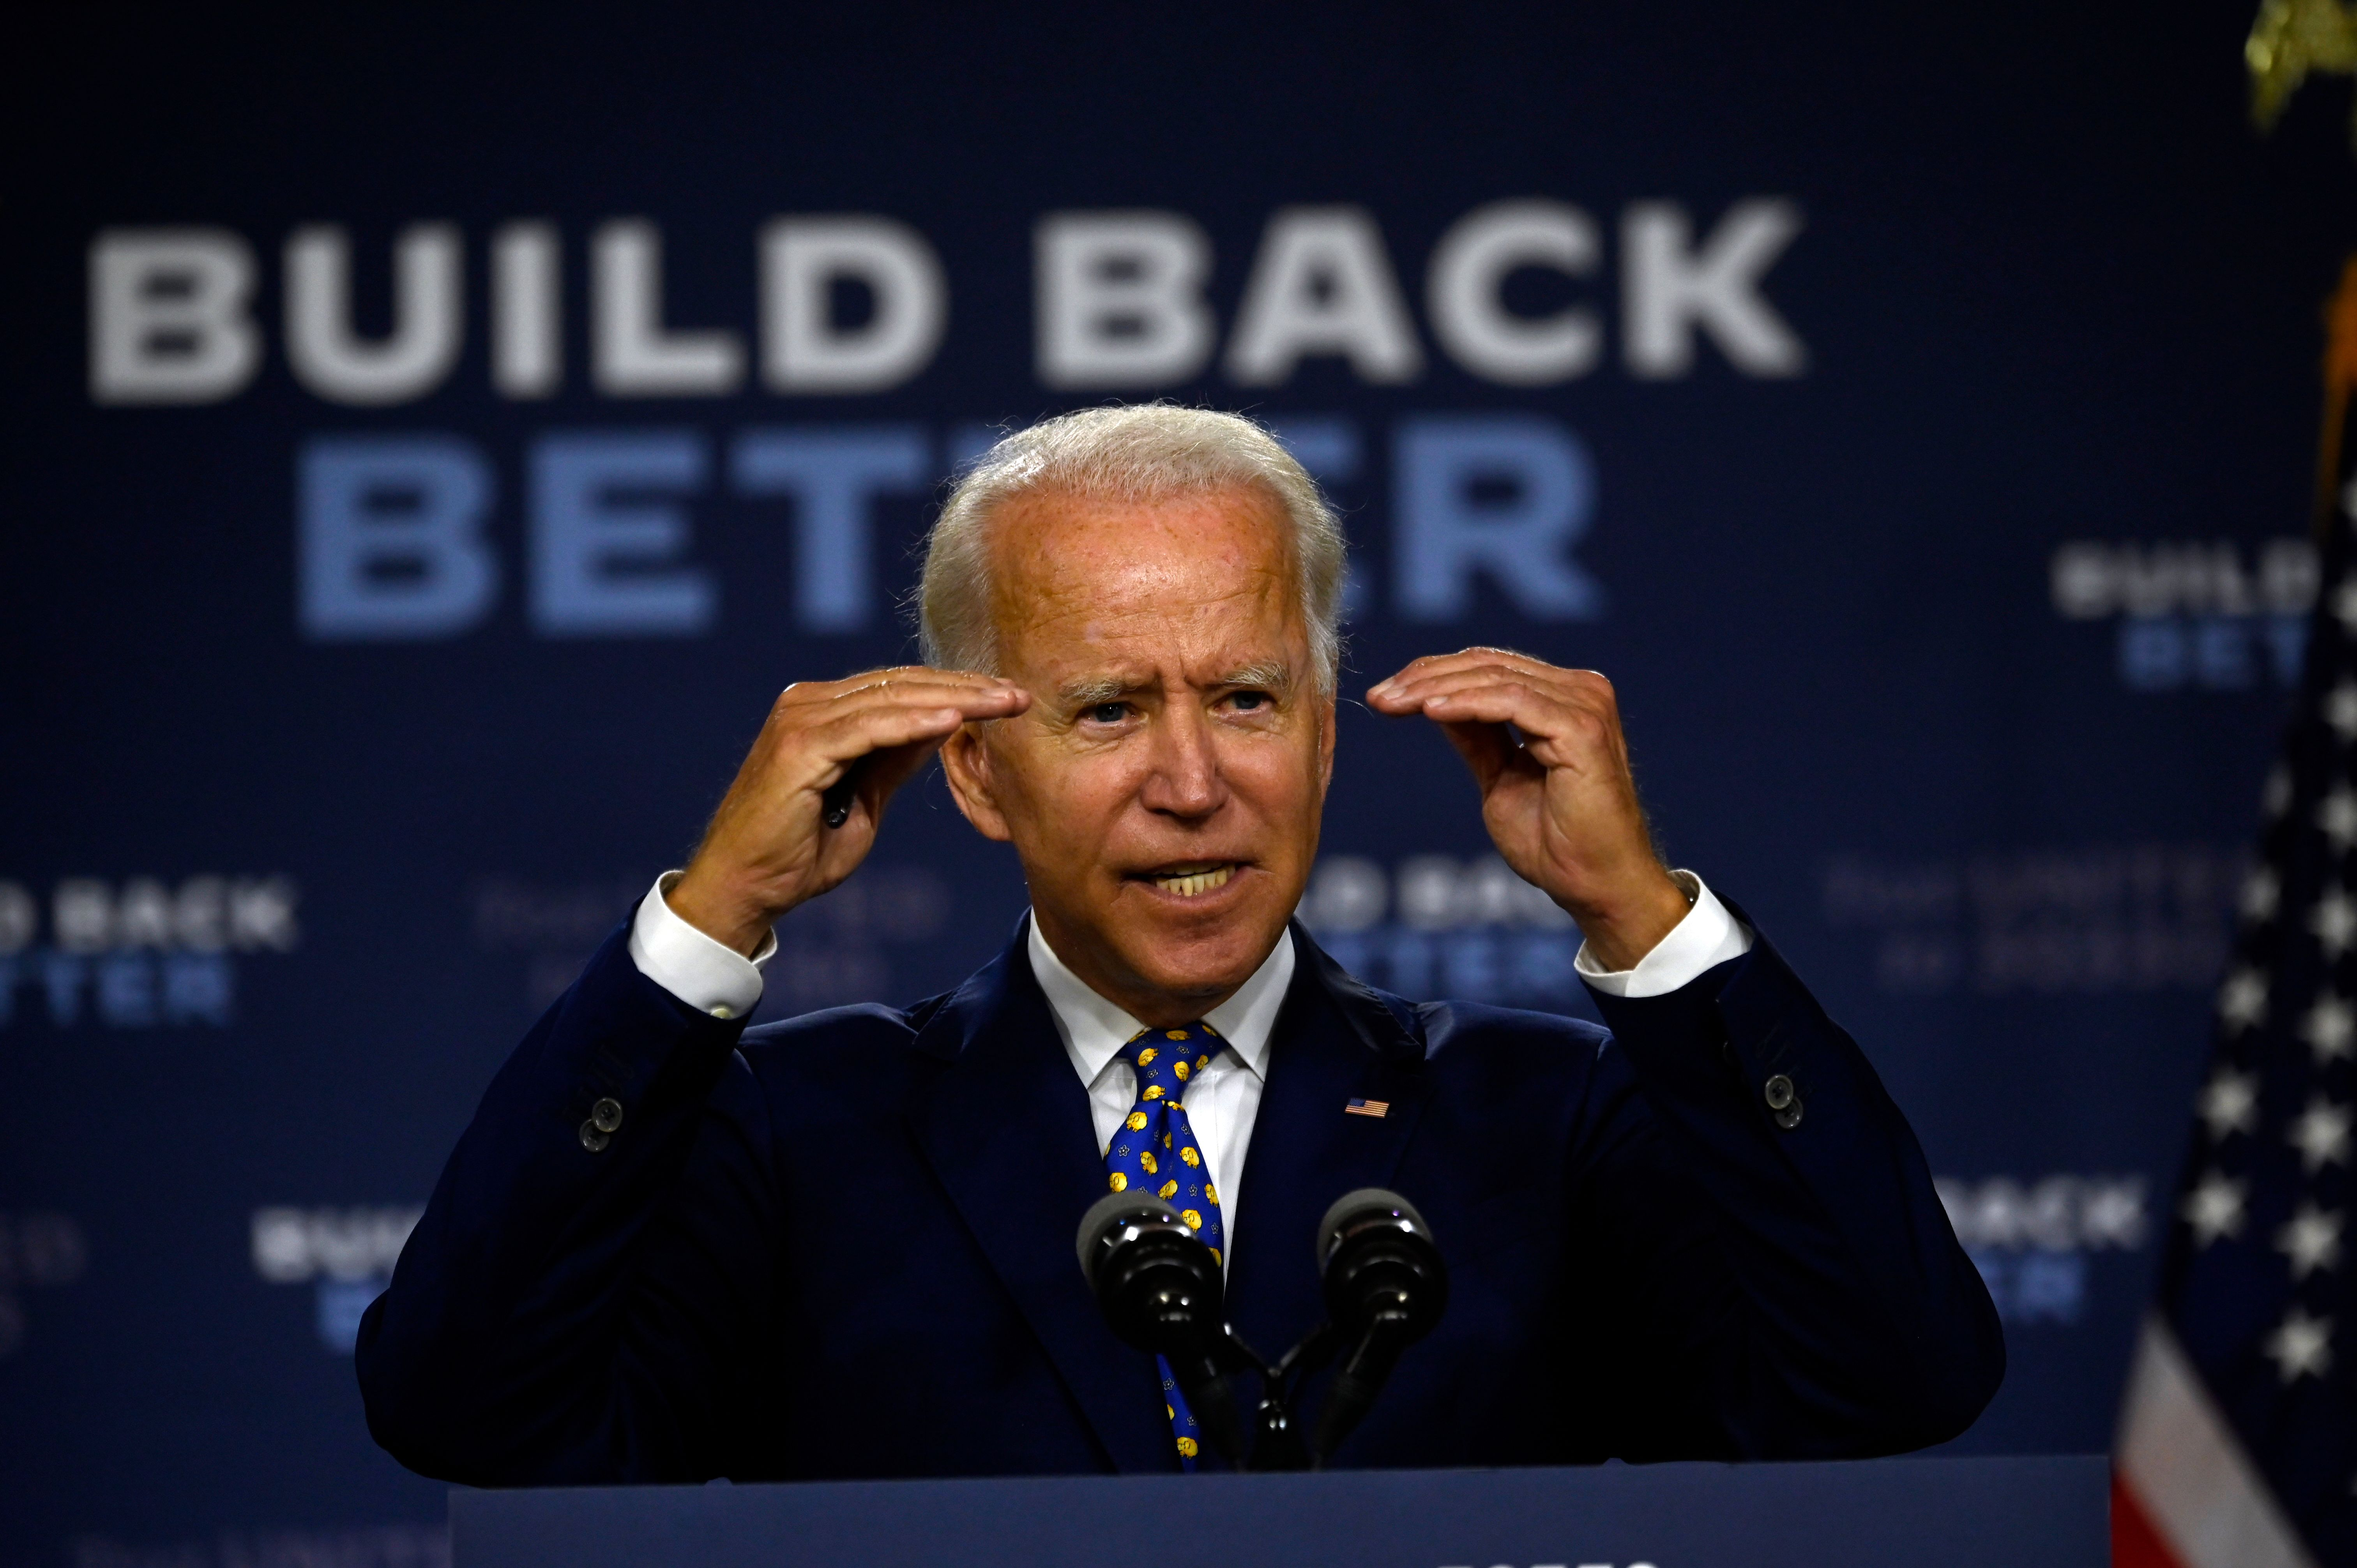 """US Democratic presidential candidate and former Vice President Joe Biden speaks during a campaign event at the William """"Hicks"""" Anderson Community Center in Wilmington, Delaware on July 28, 2020. (Photo by ANDREW CABALLERO-REYNOLDS/AFP via Getty Images)"""